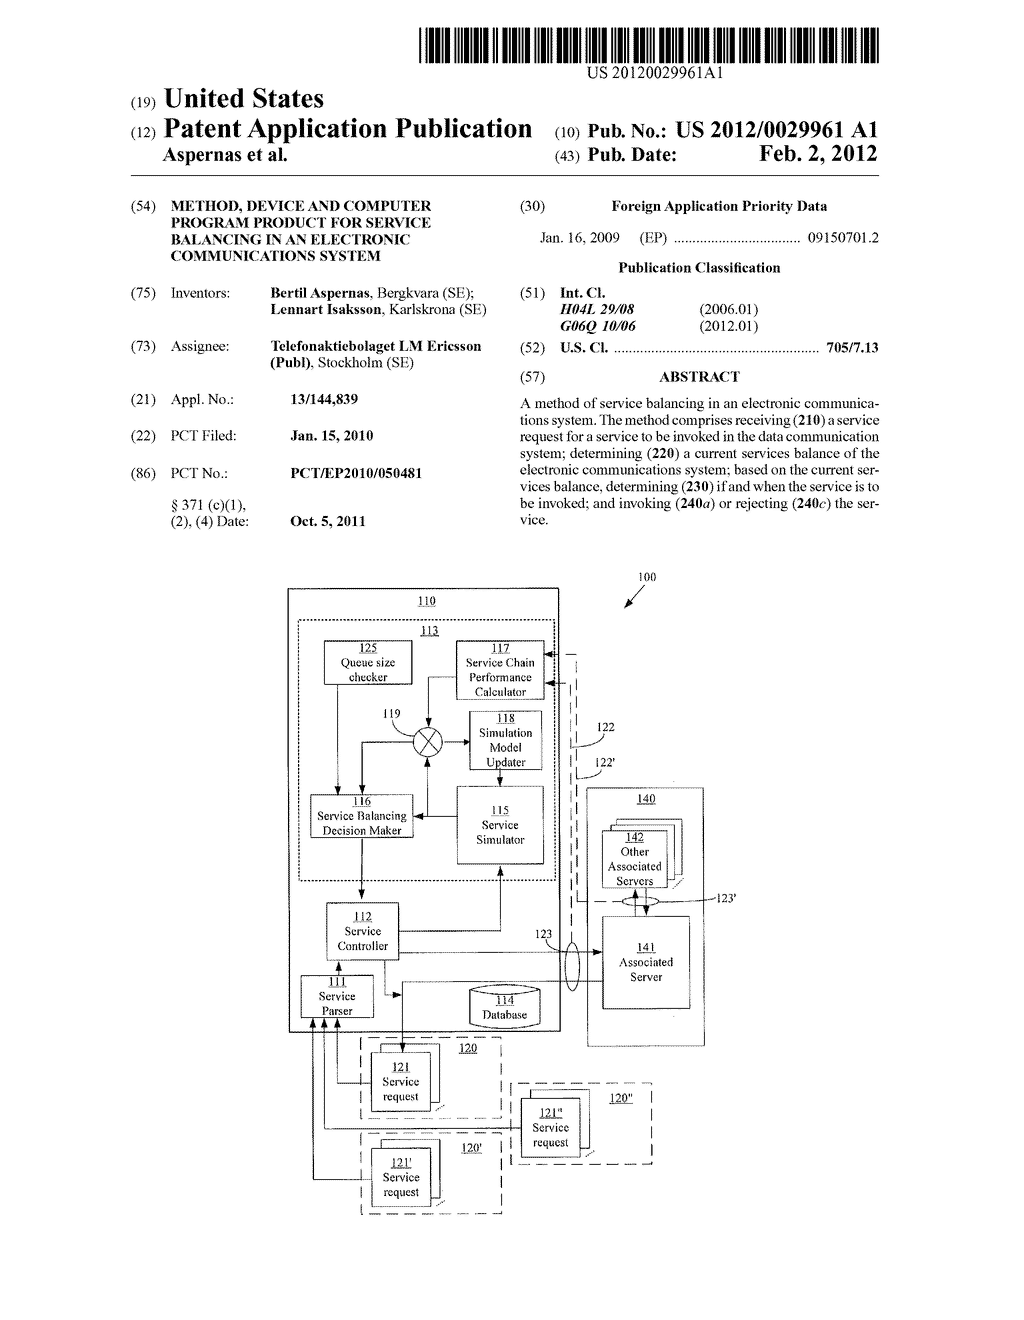 METHOD, DEVICE AND COMPUTER PROGRAM PRODUCT FOR SERVICE BALANCING IN AN     ELECTRONIC COMMUNICATIONS SYSTEM - diagram, schematic, and image 01